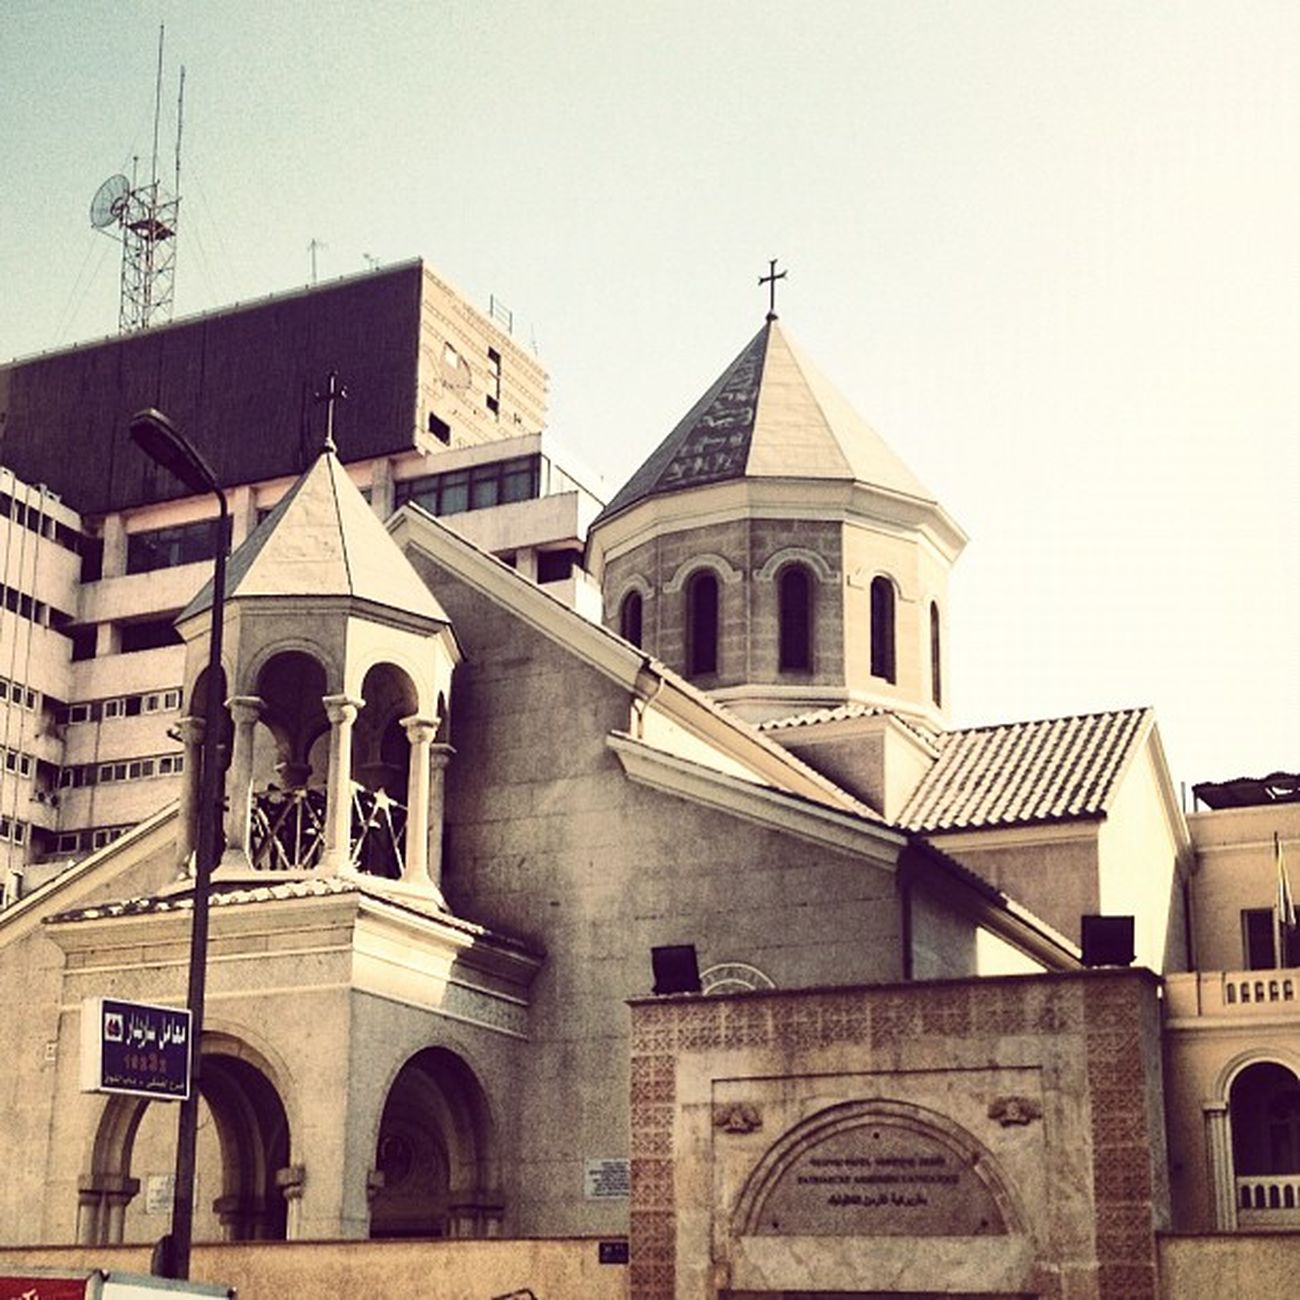 Armenian Catholic Patriarchate and the Church of the Assumption is one of only 2 Armenian Catholic churches in Greater Cairo (other in Heliopolis), and one of only 3 in all of the Egypt Q8 Follow Me TBT  Sun Bestoftheday Beautiful Igers Sky UAE Love Jj  Bahrain Tweegram KSA Instagood Egypt Instagramhub Kuwait Webstagram Oman Instadaily Photooftheday Tagsforlikes Iphonesia Magicalarabia Qatar Keepingcairo Picoftheday Belovedegypt